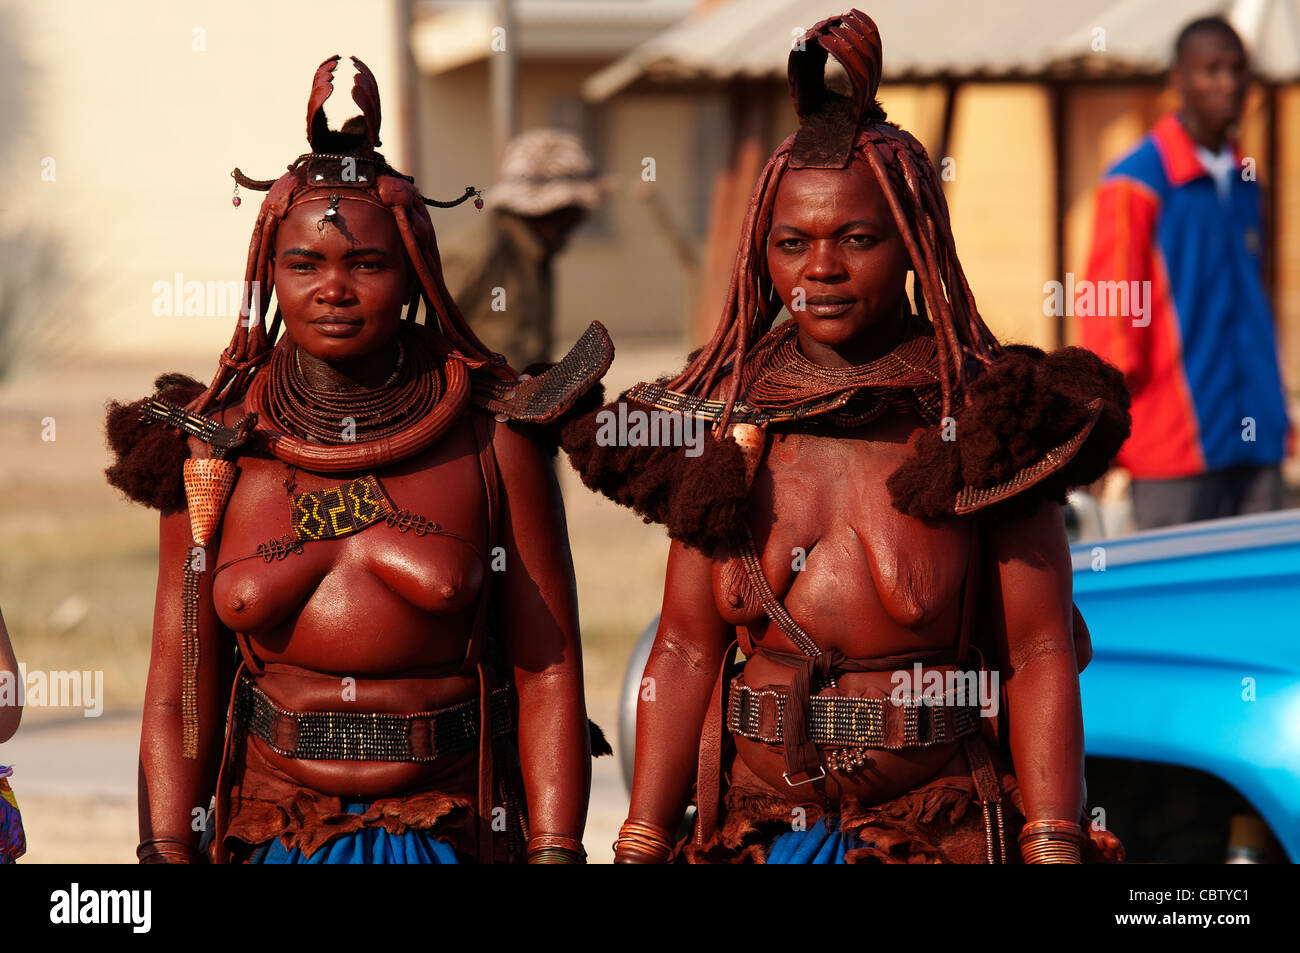 Himbas in the street of Opuwo town, Kunene region, northern Namibia - Stock Image